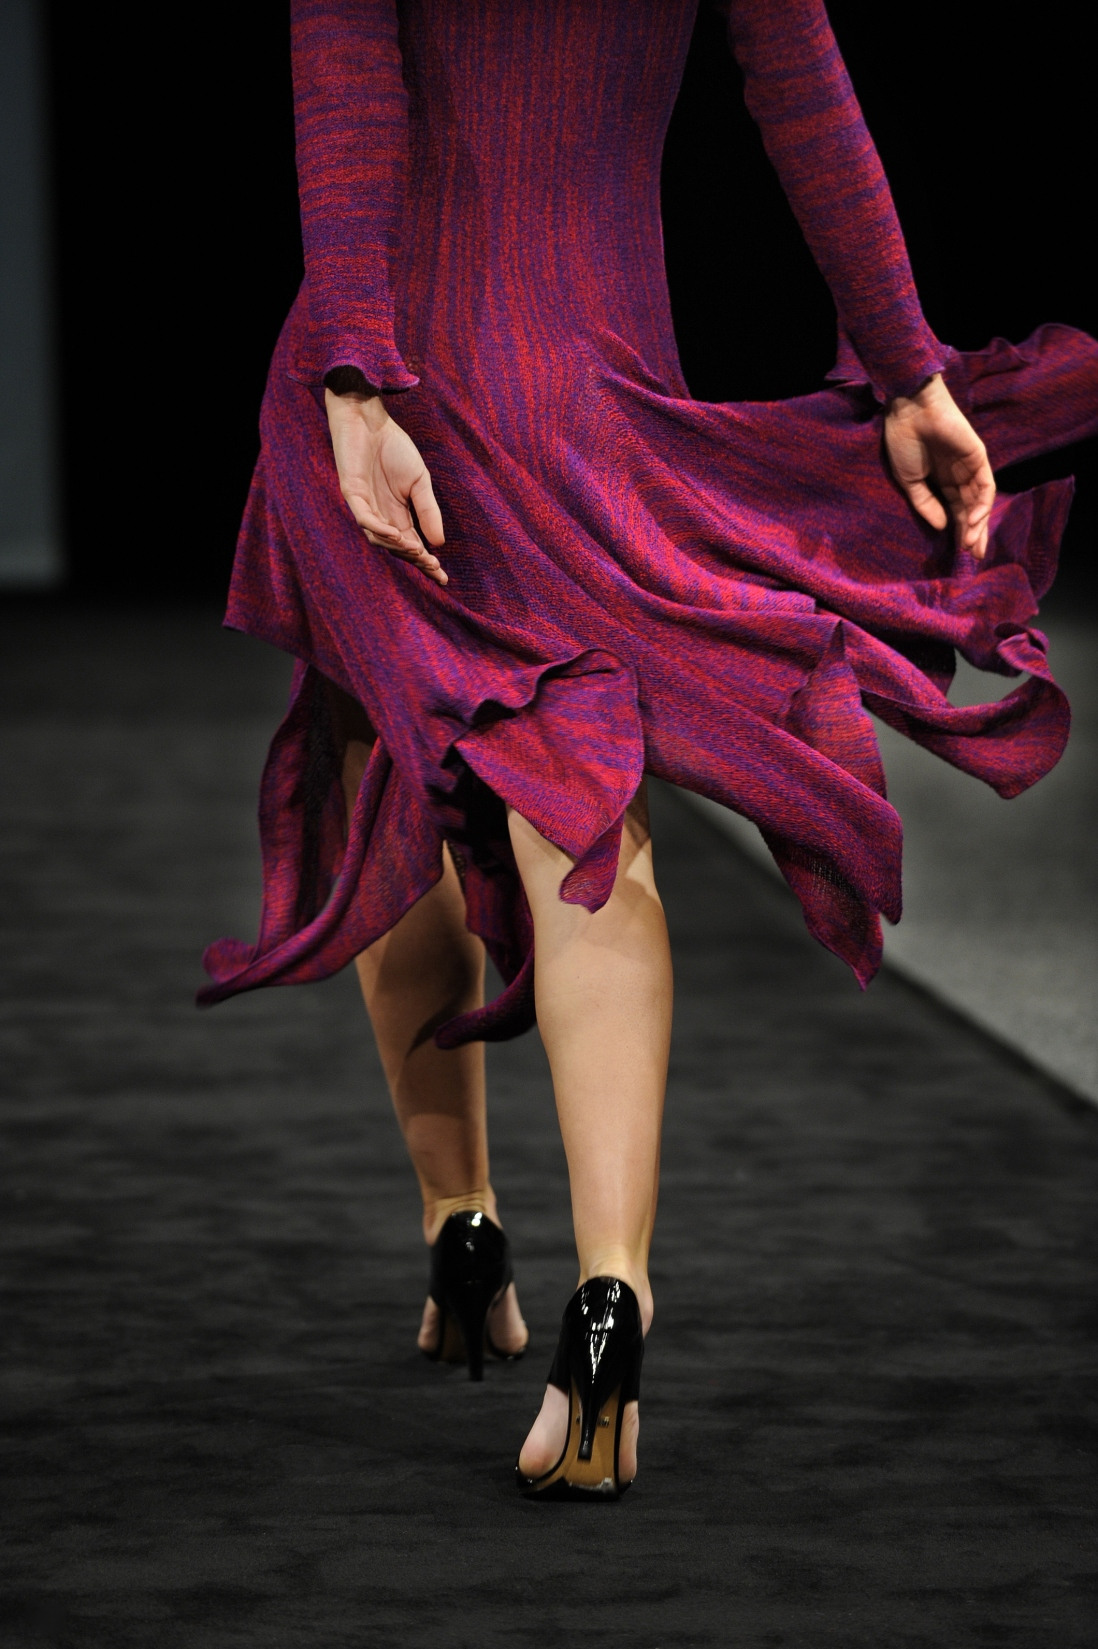 This is a colour photograph shows a woman's legs walking down a catwalk and modelling a colourful knitted dress